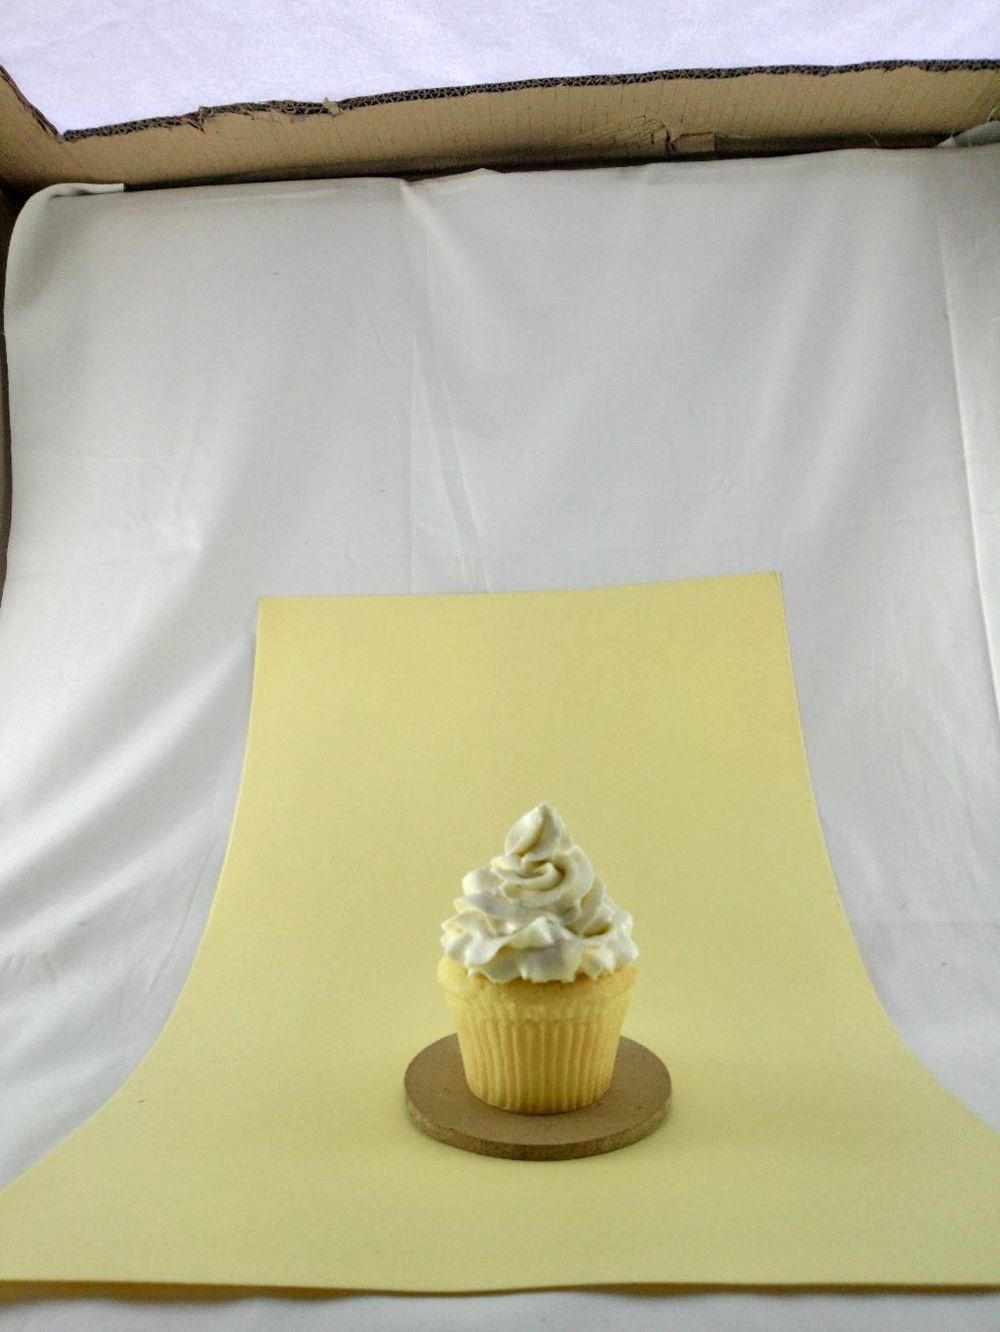 Cupcakes! - image 2 - student project